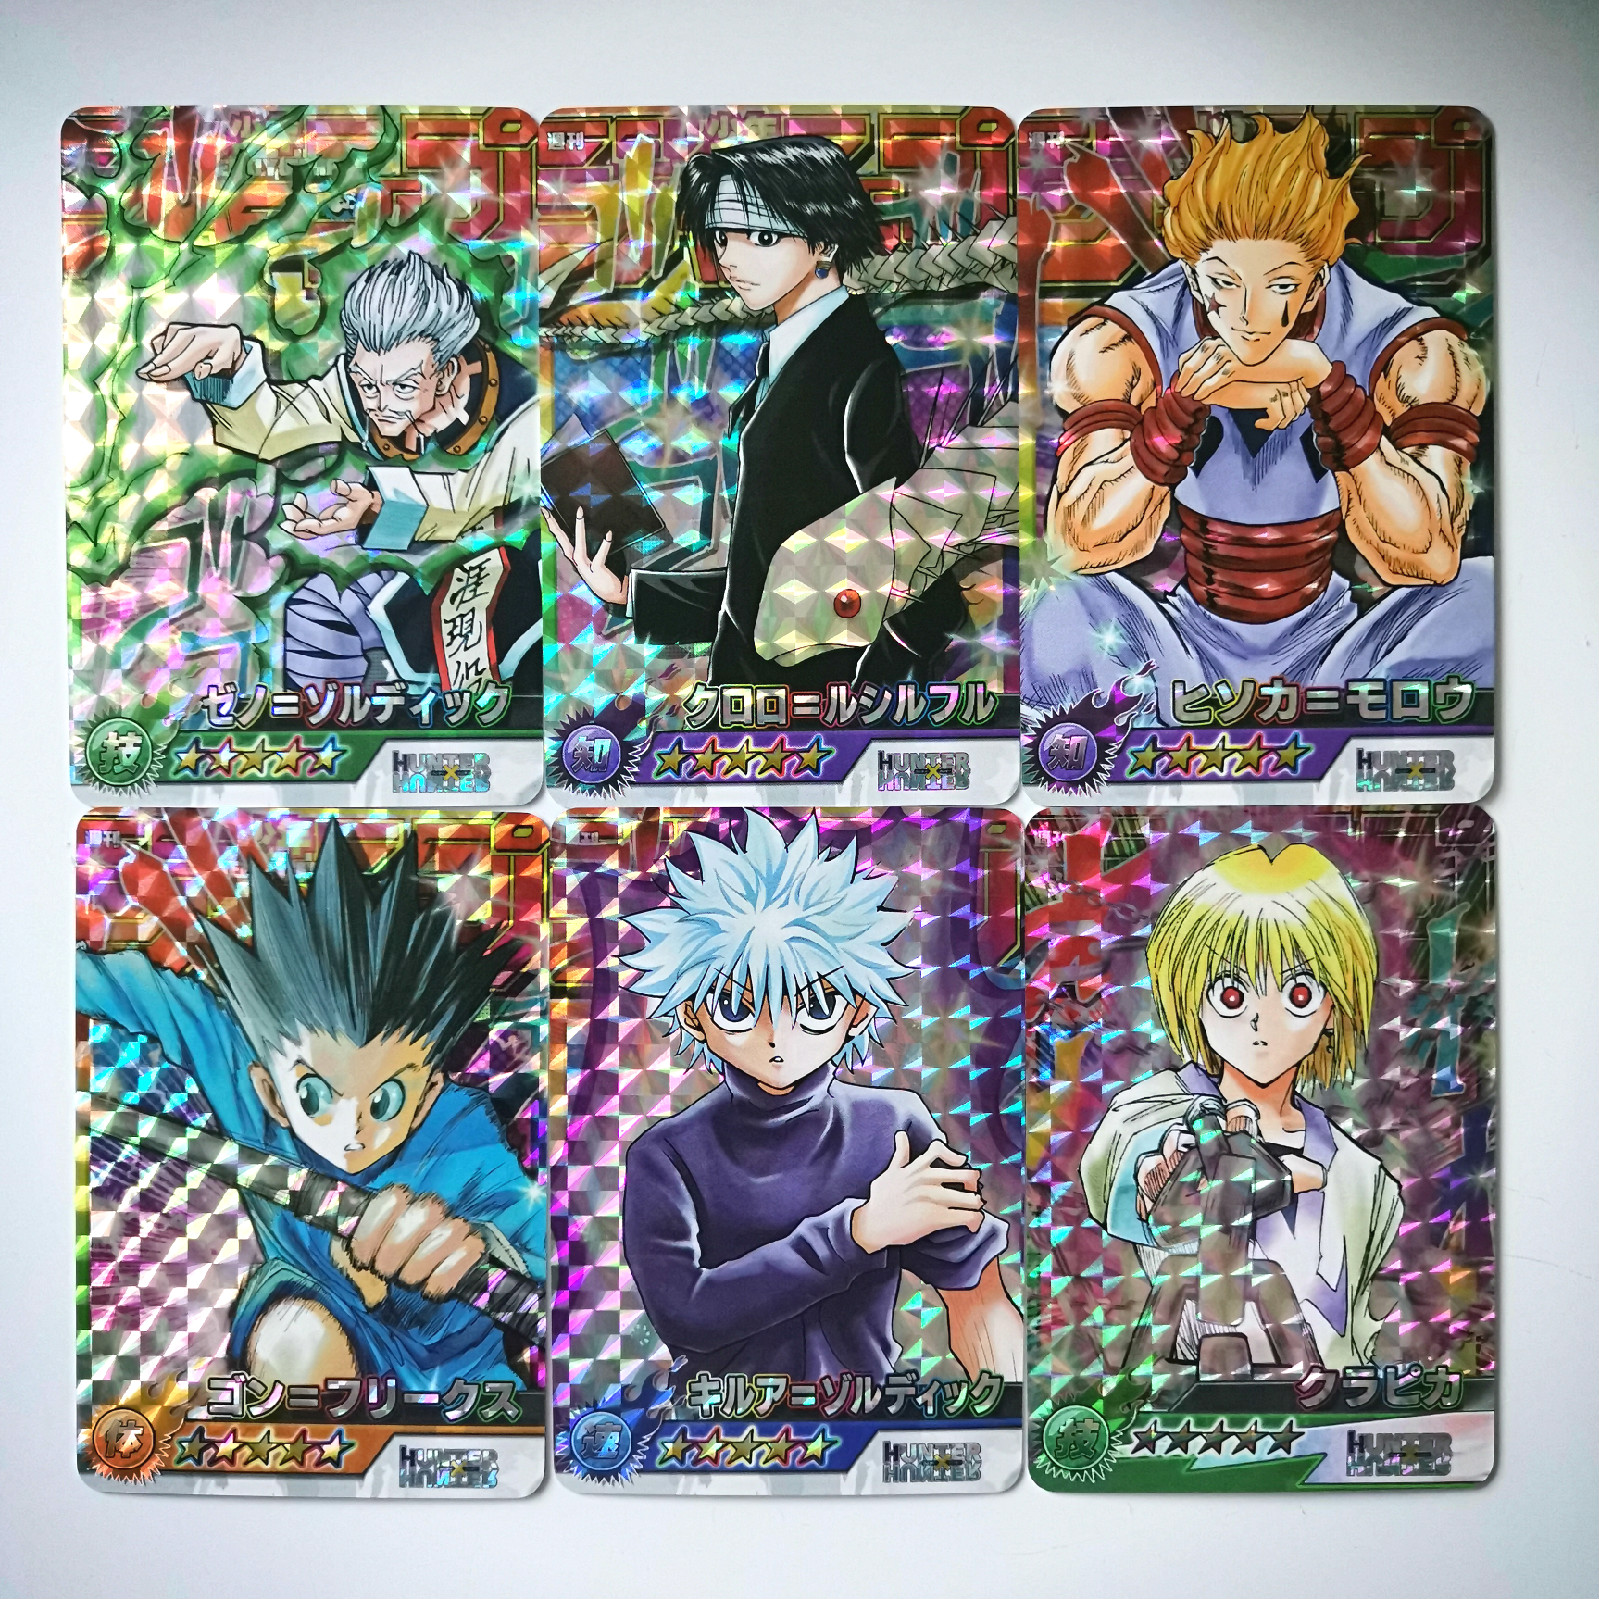 18pcs/set HUNTER Weekly Juvenile JUMP COMICS Toys Hobbies Hobby Collectibles Game Collection Anime Cards